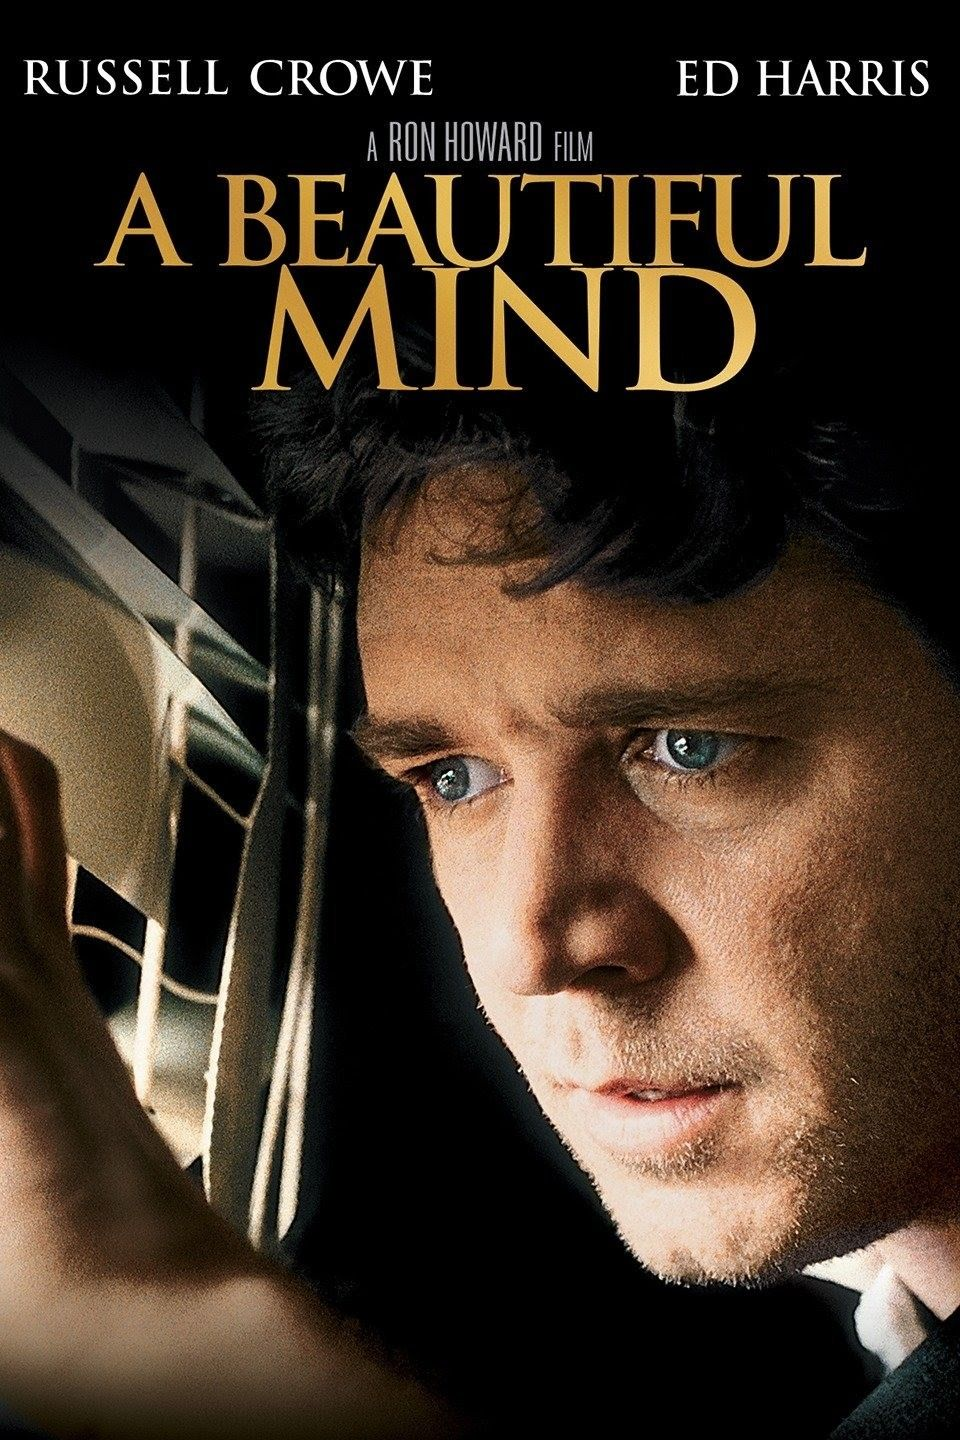 Pin By Am On Films Good Movies On Netflix Good Movies To Watch Beautiful Mind